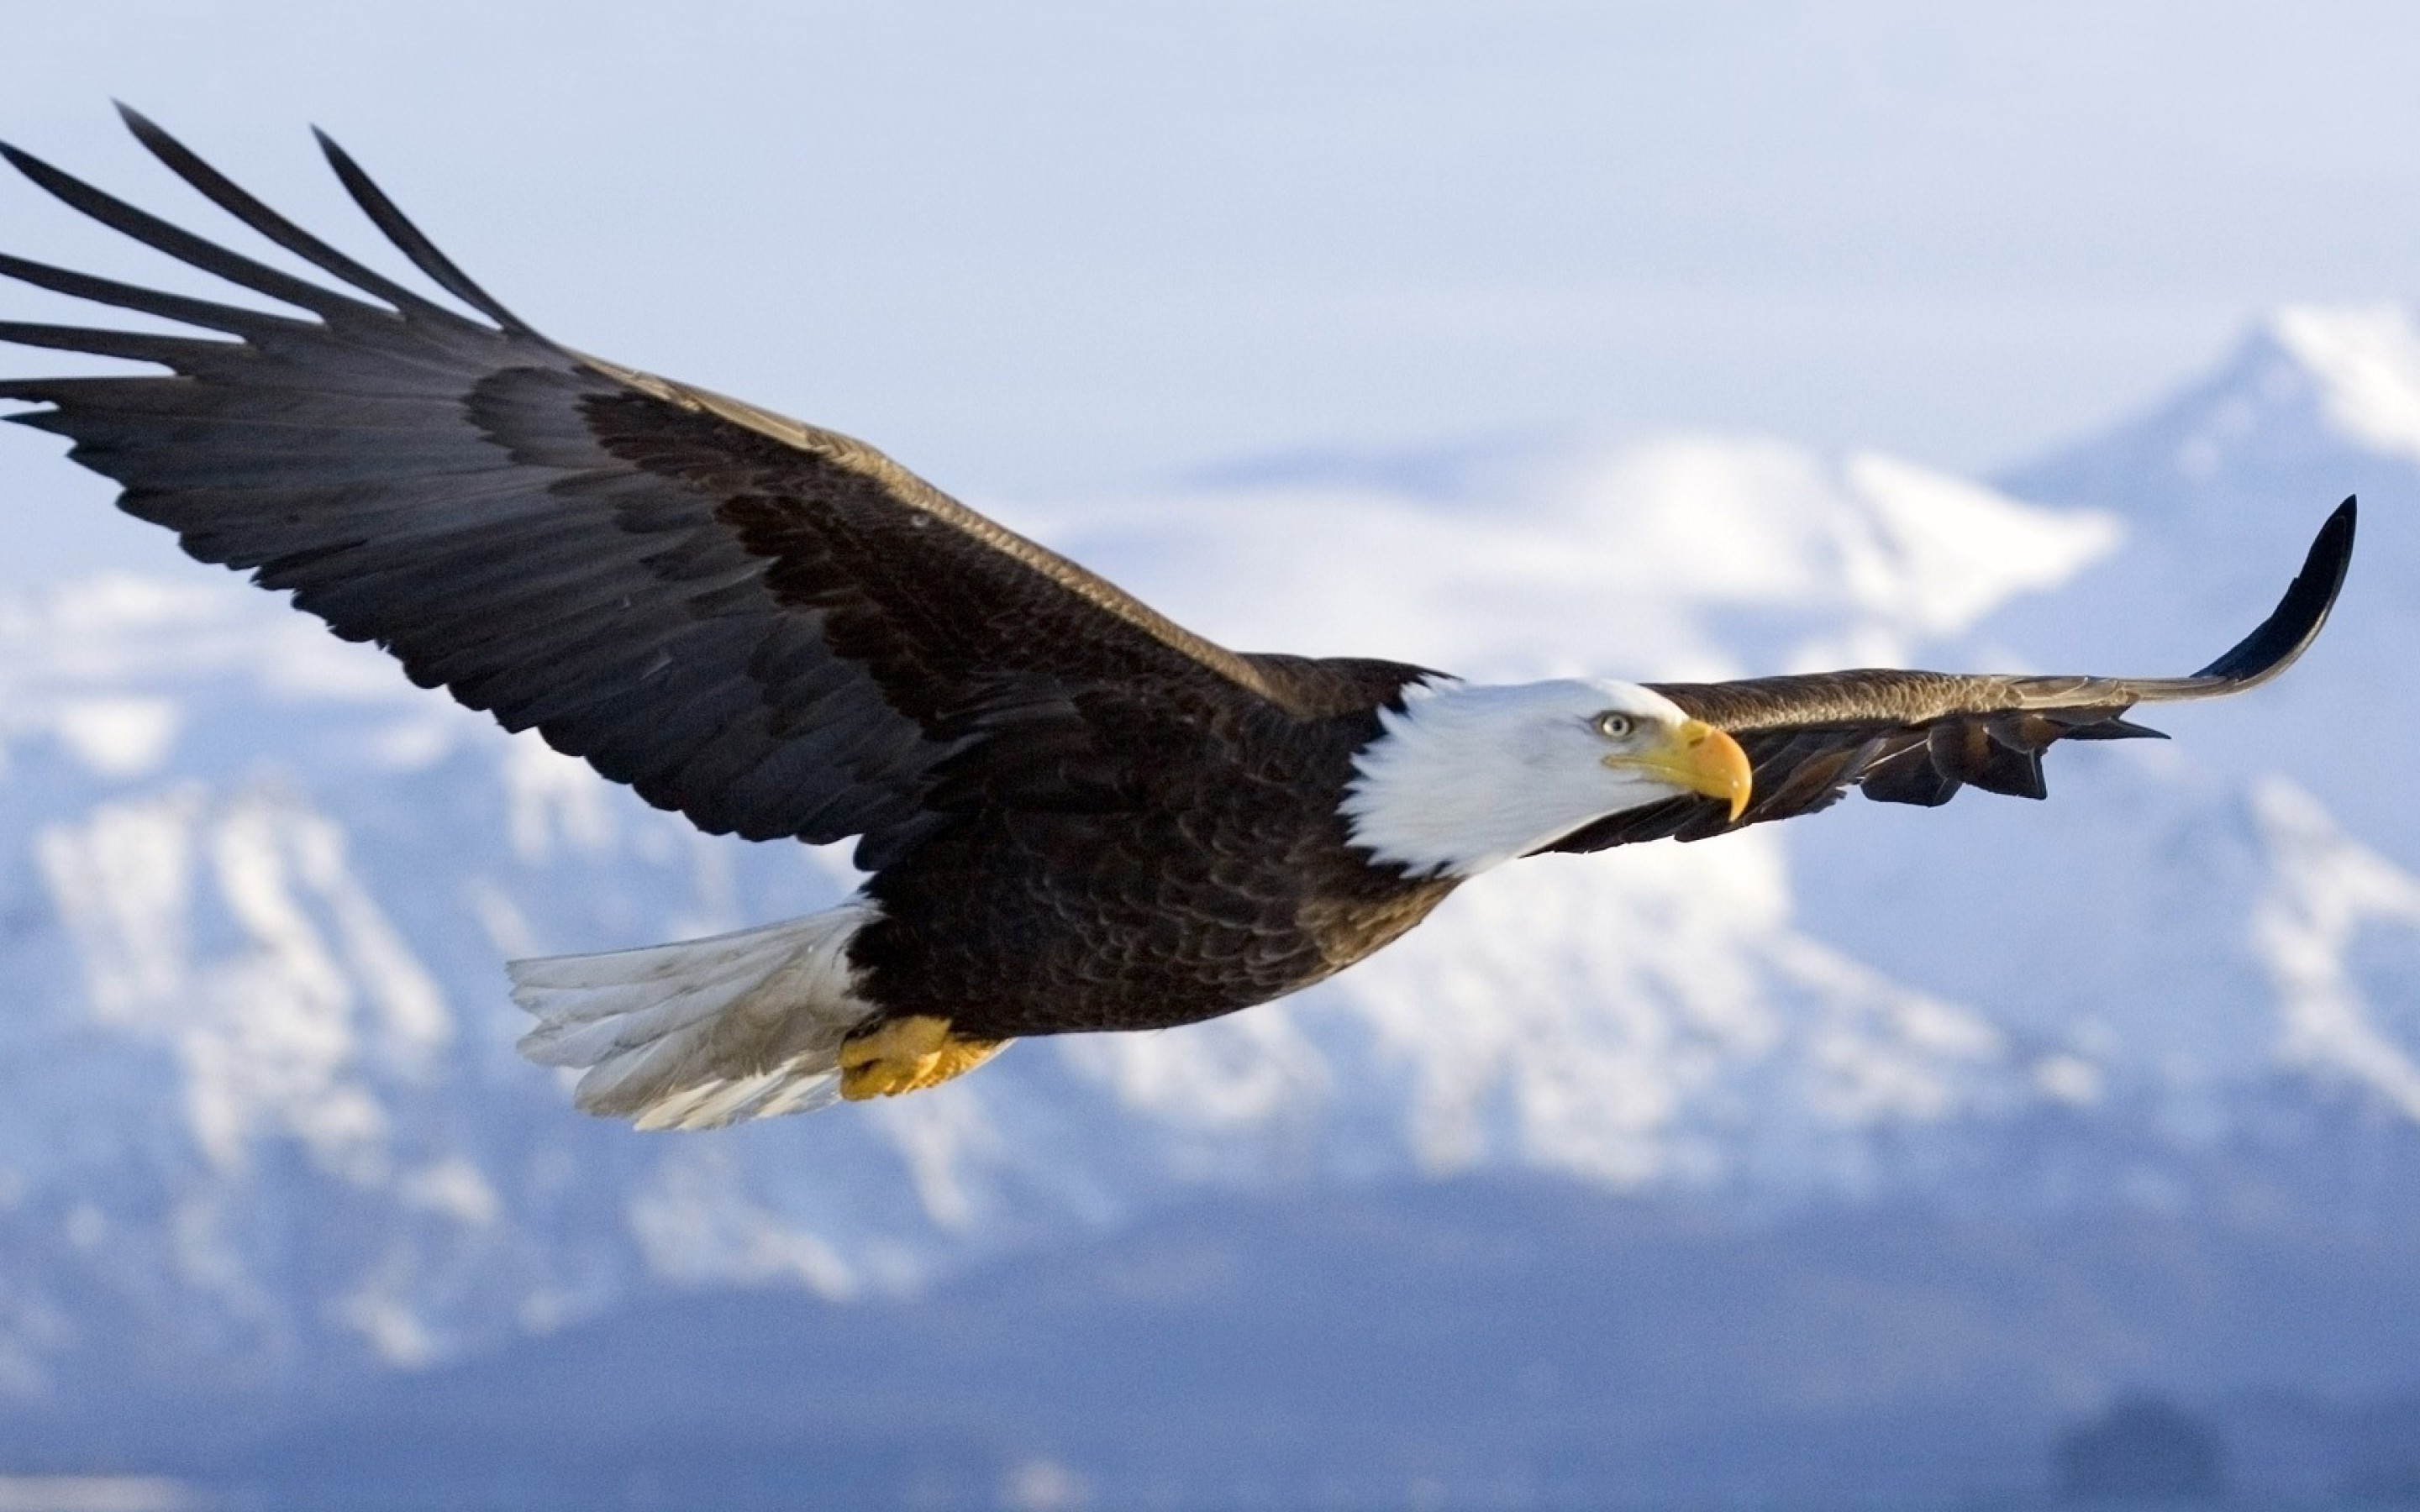 Eagles mate for life, and an established pair will use the same nest for many years. Over time some nests become enormous – they can reach a diameter of 9 ...